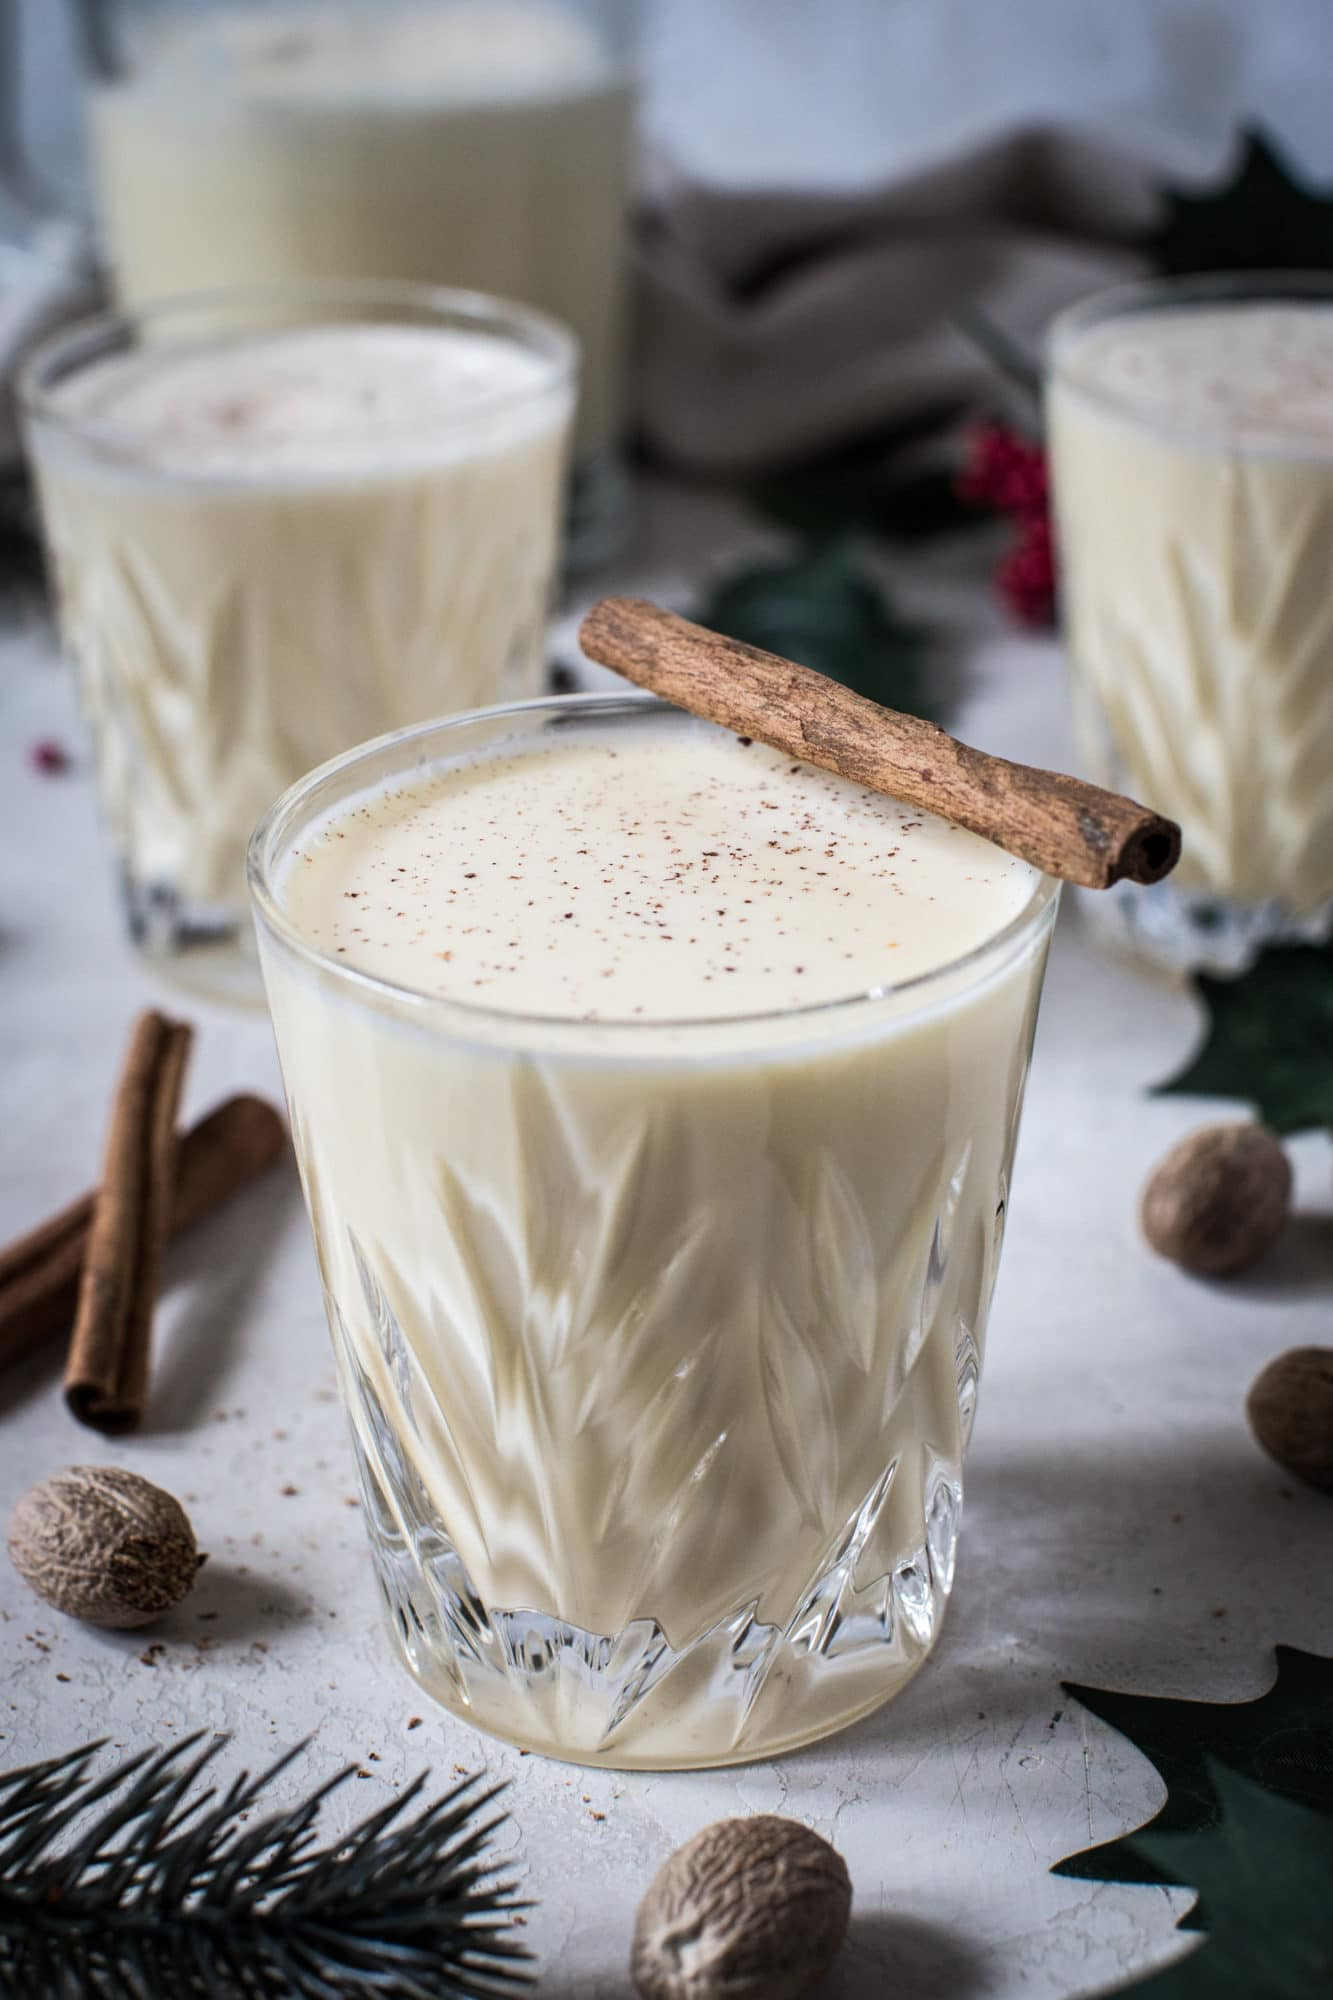 eggnog in a crystal glass with cinnamon stick on top